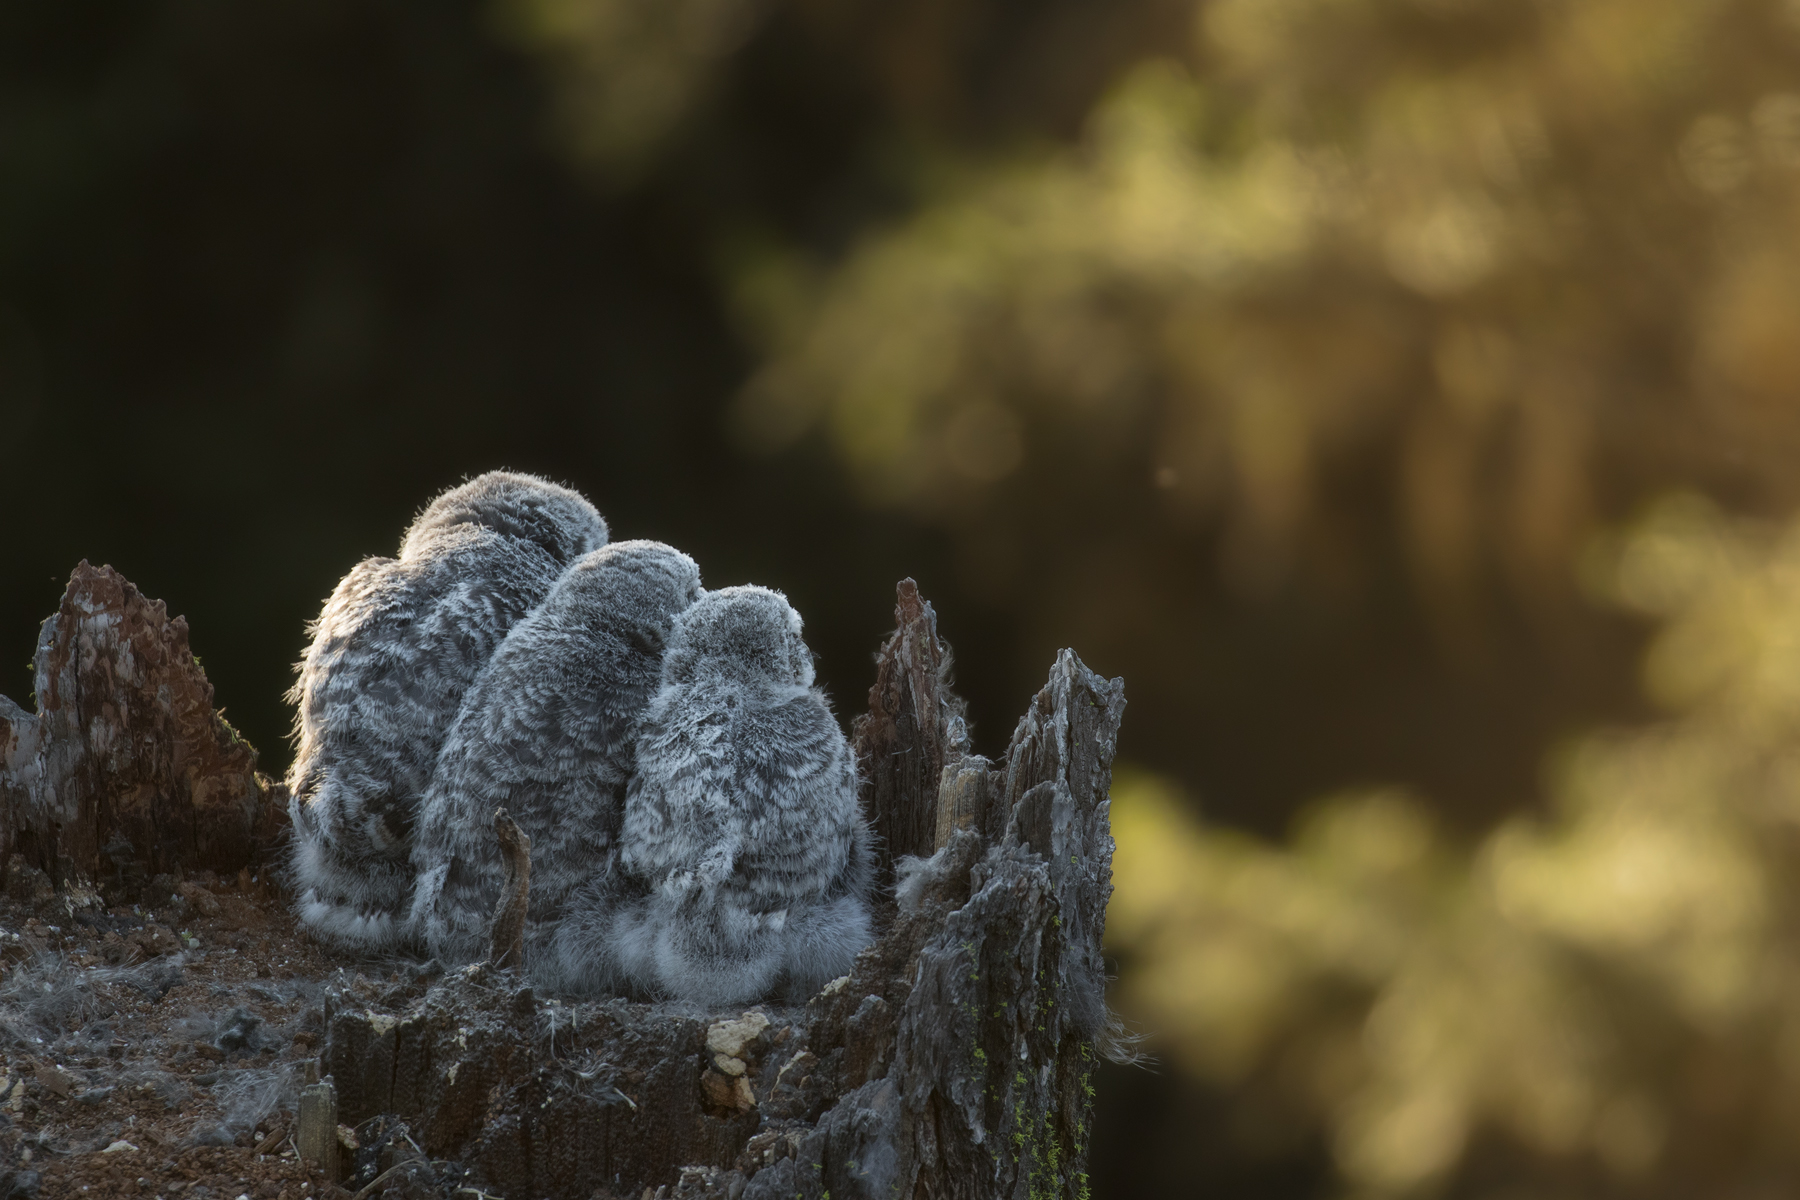 A trio of nestlings peer out from their home atop a Douglas fir snag; patiently awaiting the return of their mother.